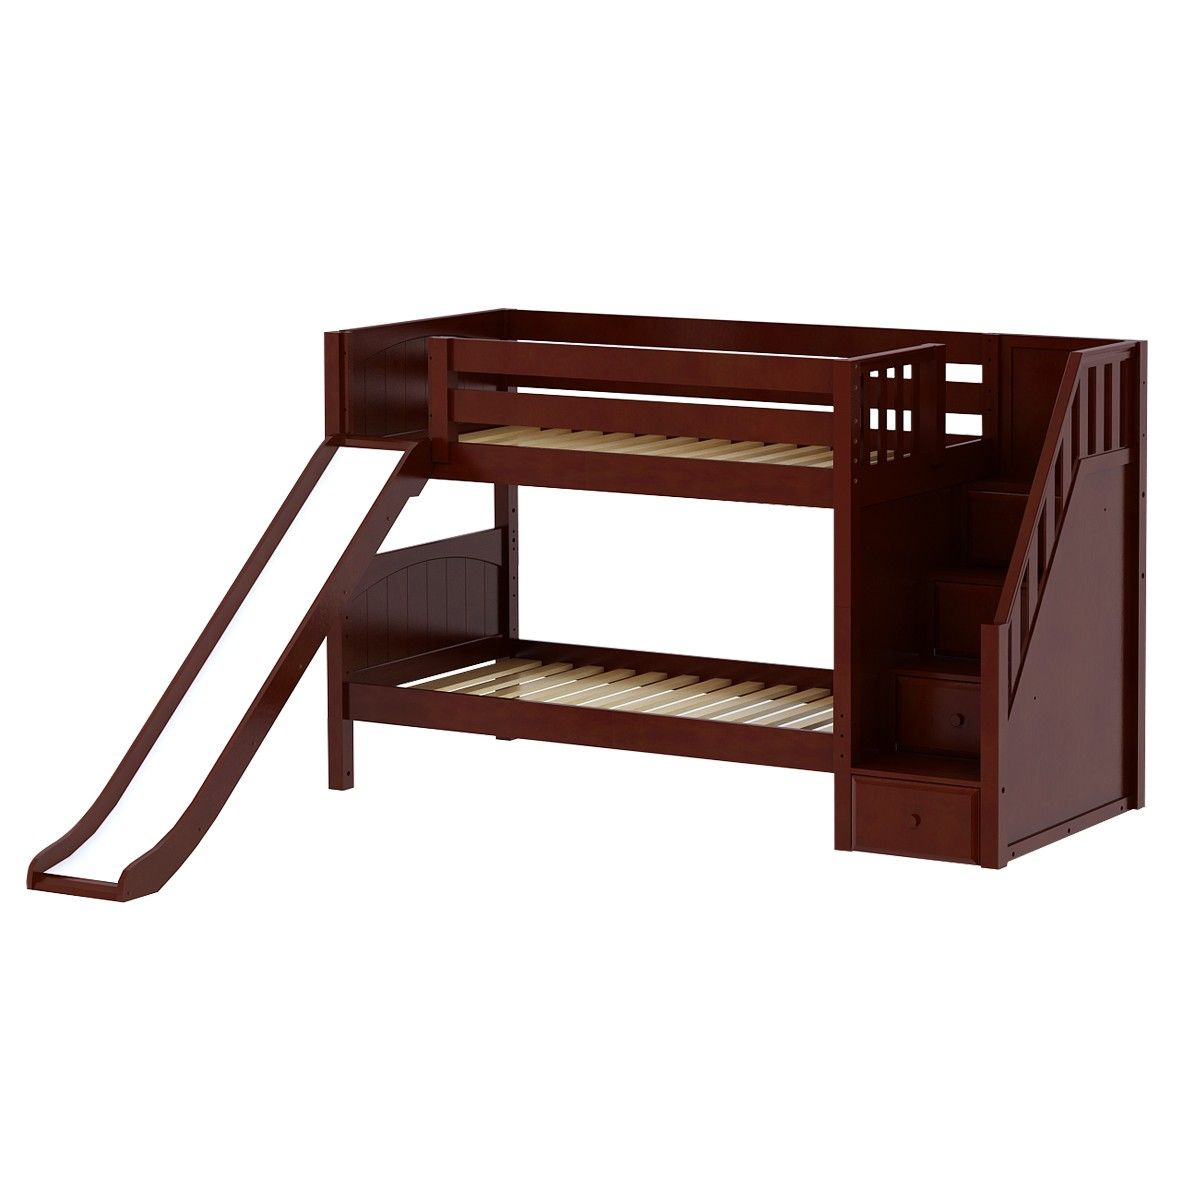 Twin low loft bed with slide  SNIGGLE CP  Low Bunk Bed with Staircase and Slide Twin  Chestnut